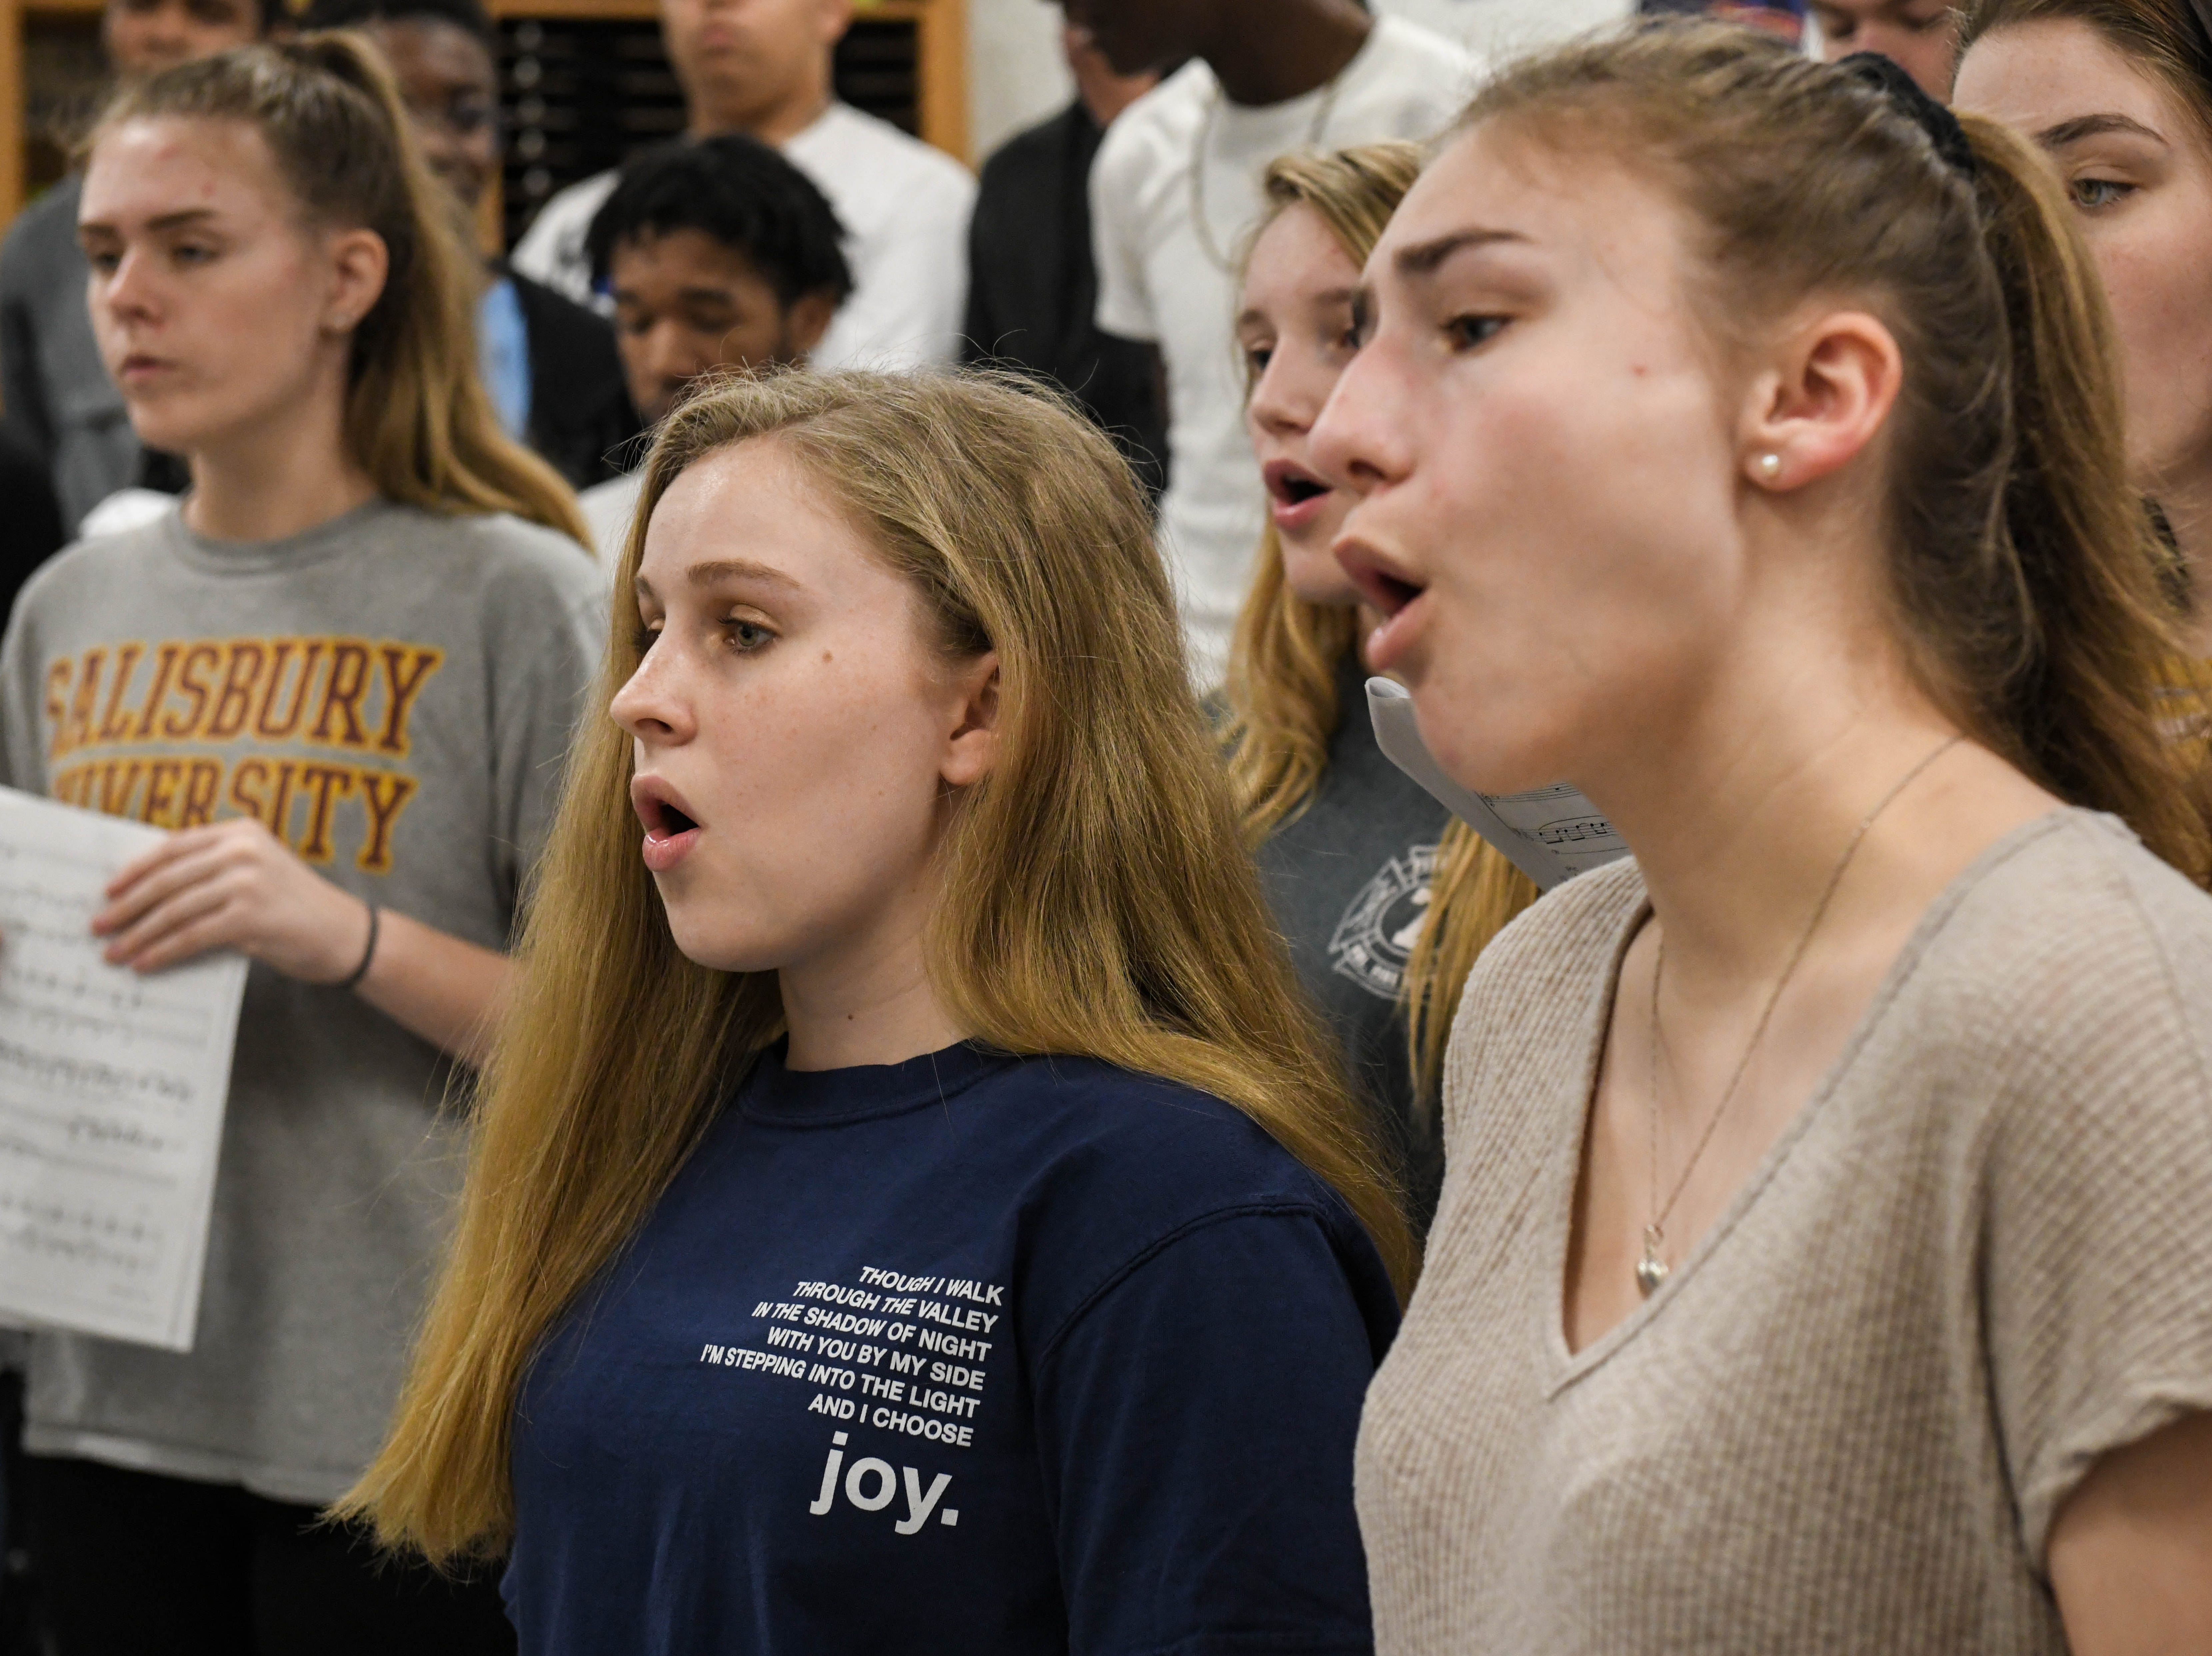 Students practice in choir at Parkside High School in Salisbury on Tuesday, April 9, 2019.